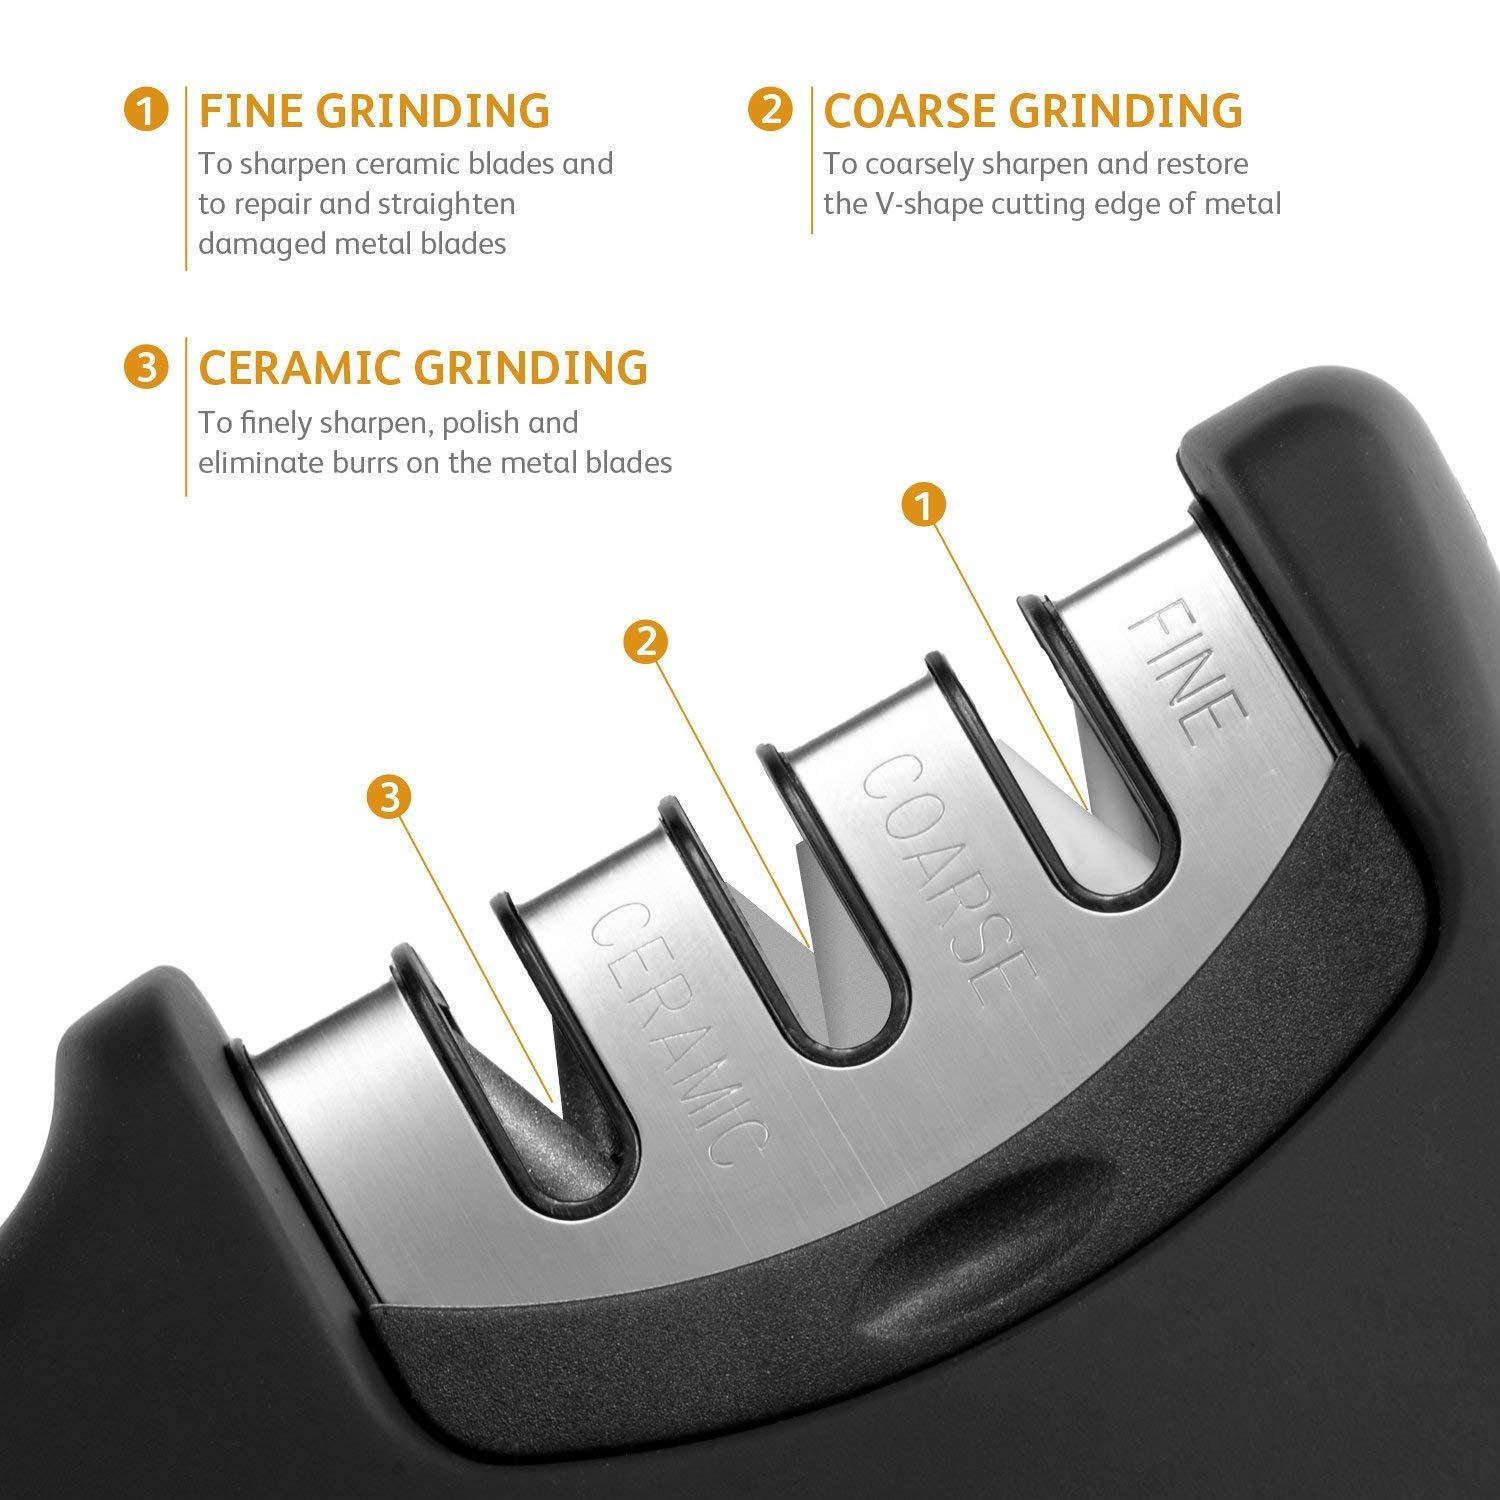 Knife Sharpener- Professional Kitchen Knife Sharpener 3 Stage Steel Diamond Ceramic Coated Kitchen Sharpening Tool with Cut Resistant Glove - Non-slip Base Chef Knife Sharpening Kit Easy to Control by HKSH (Image #2)